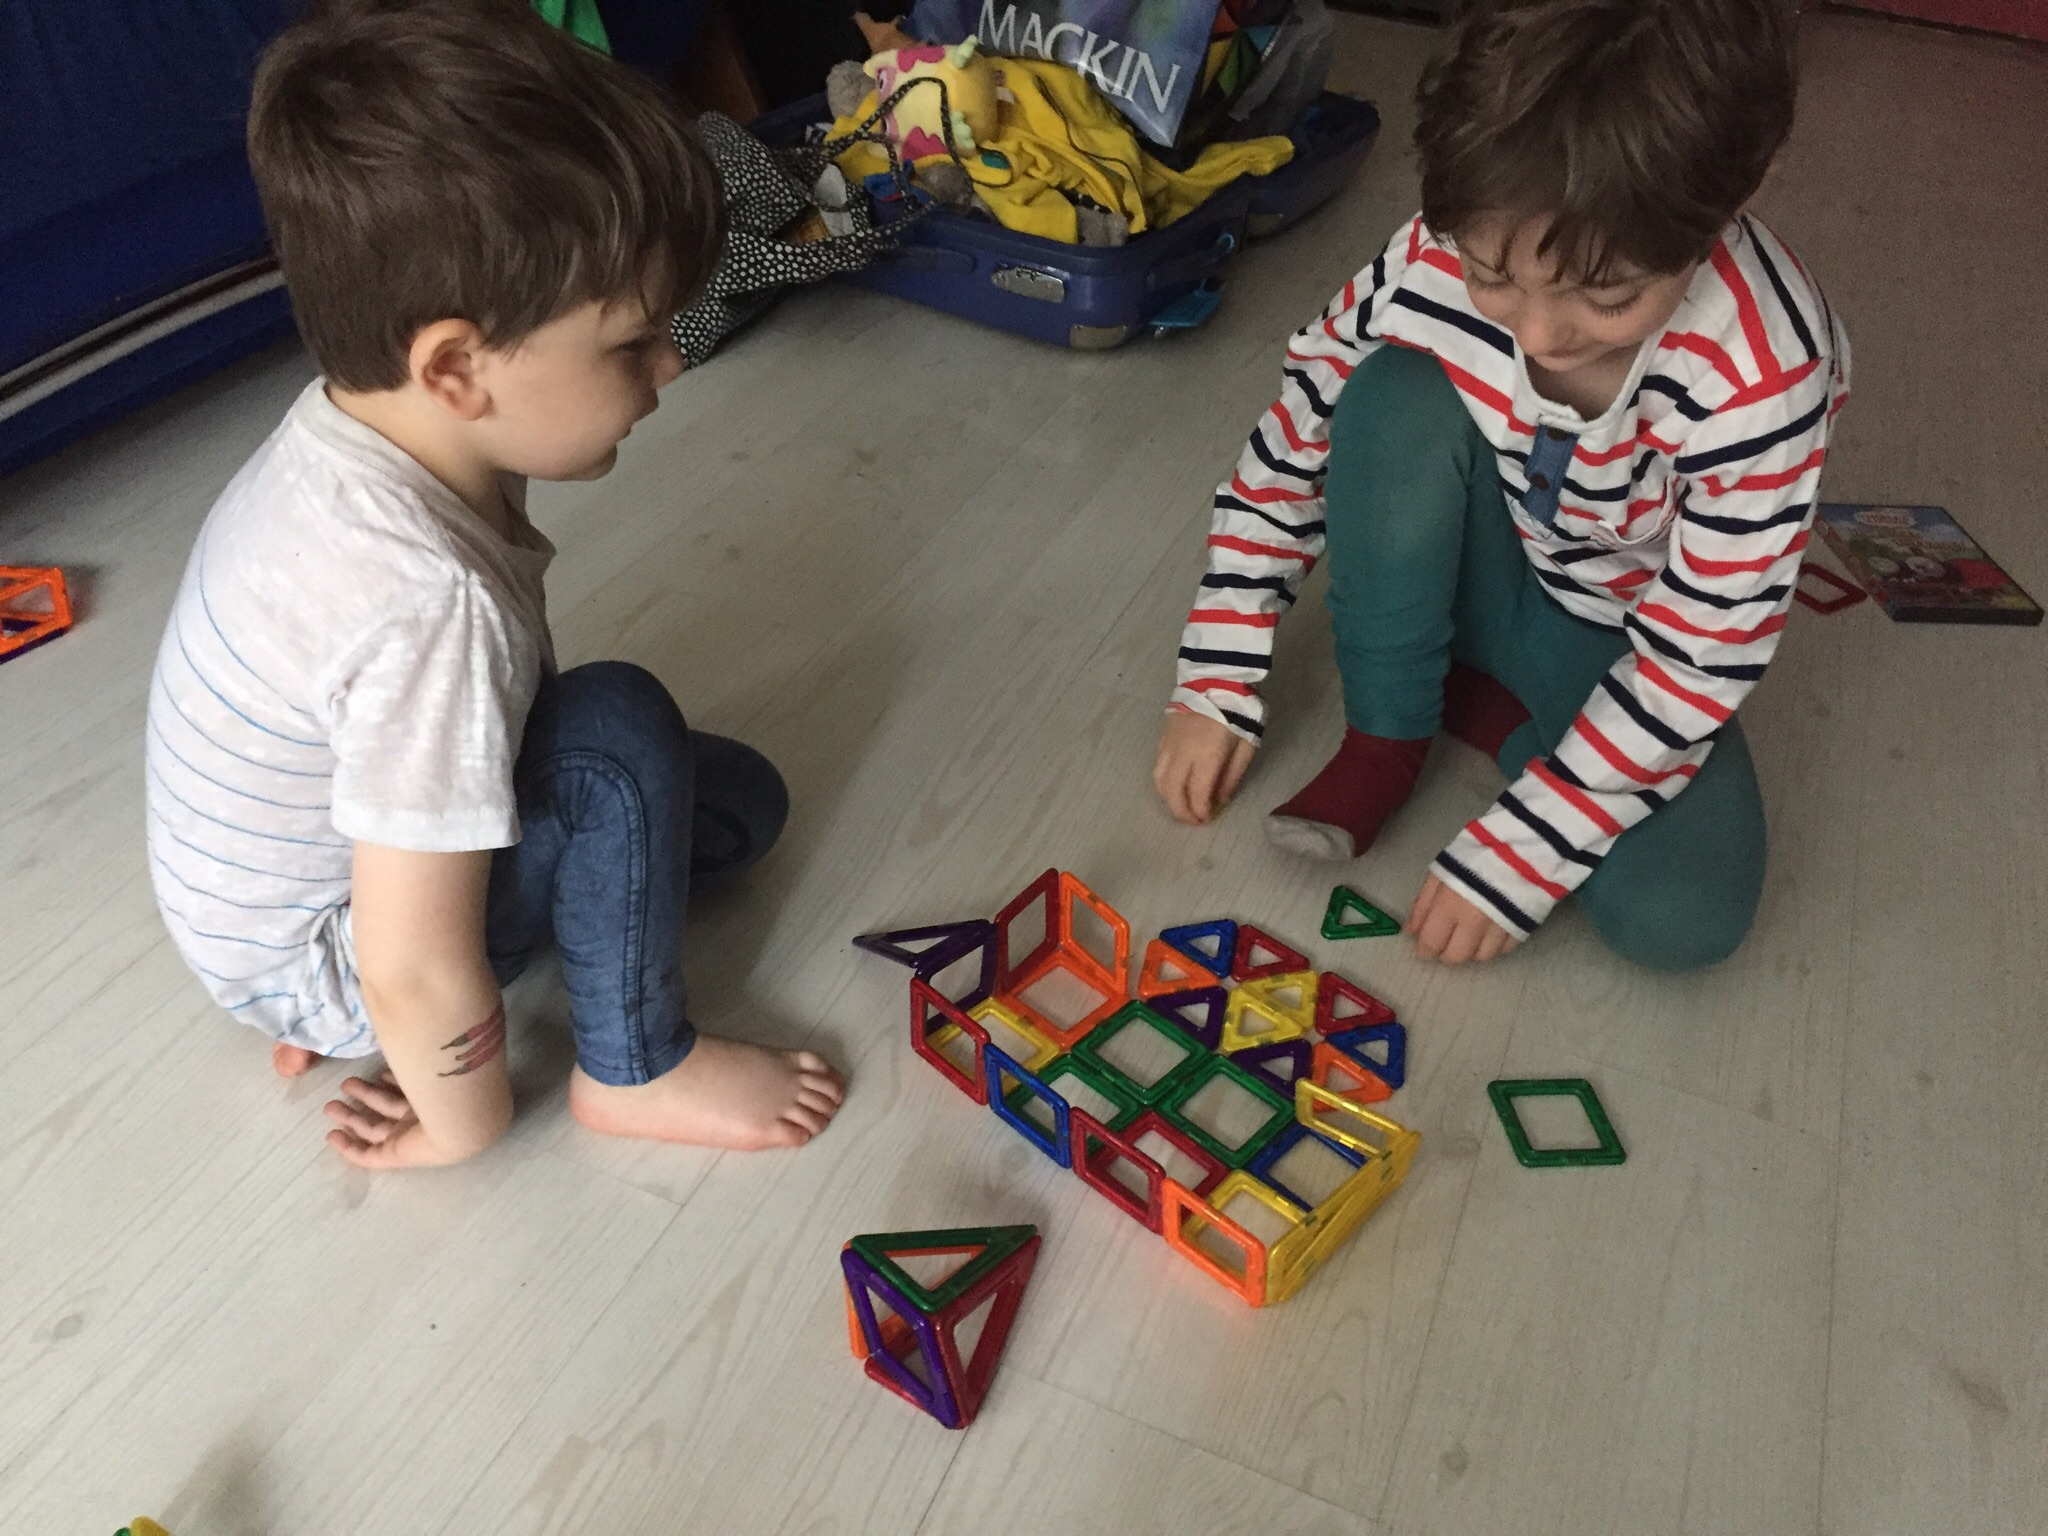 And then they played magnet tiles with each other for the rest of the morning.